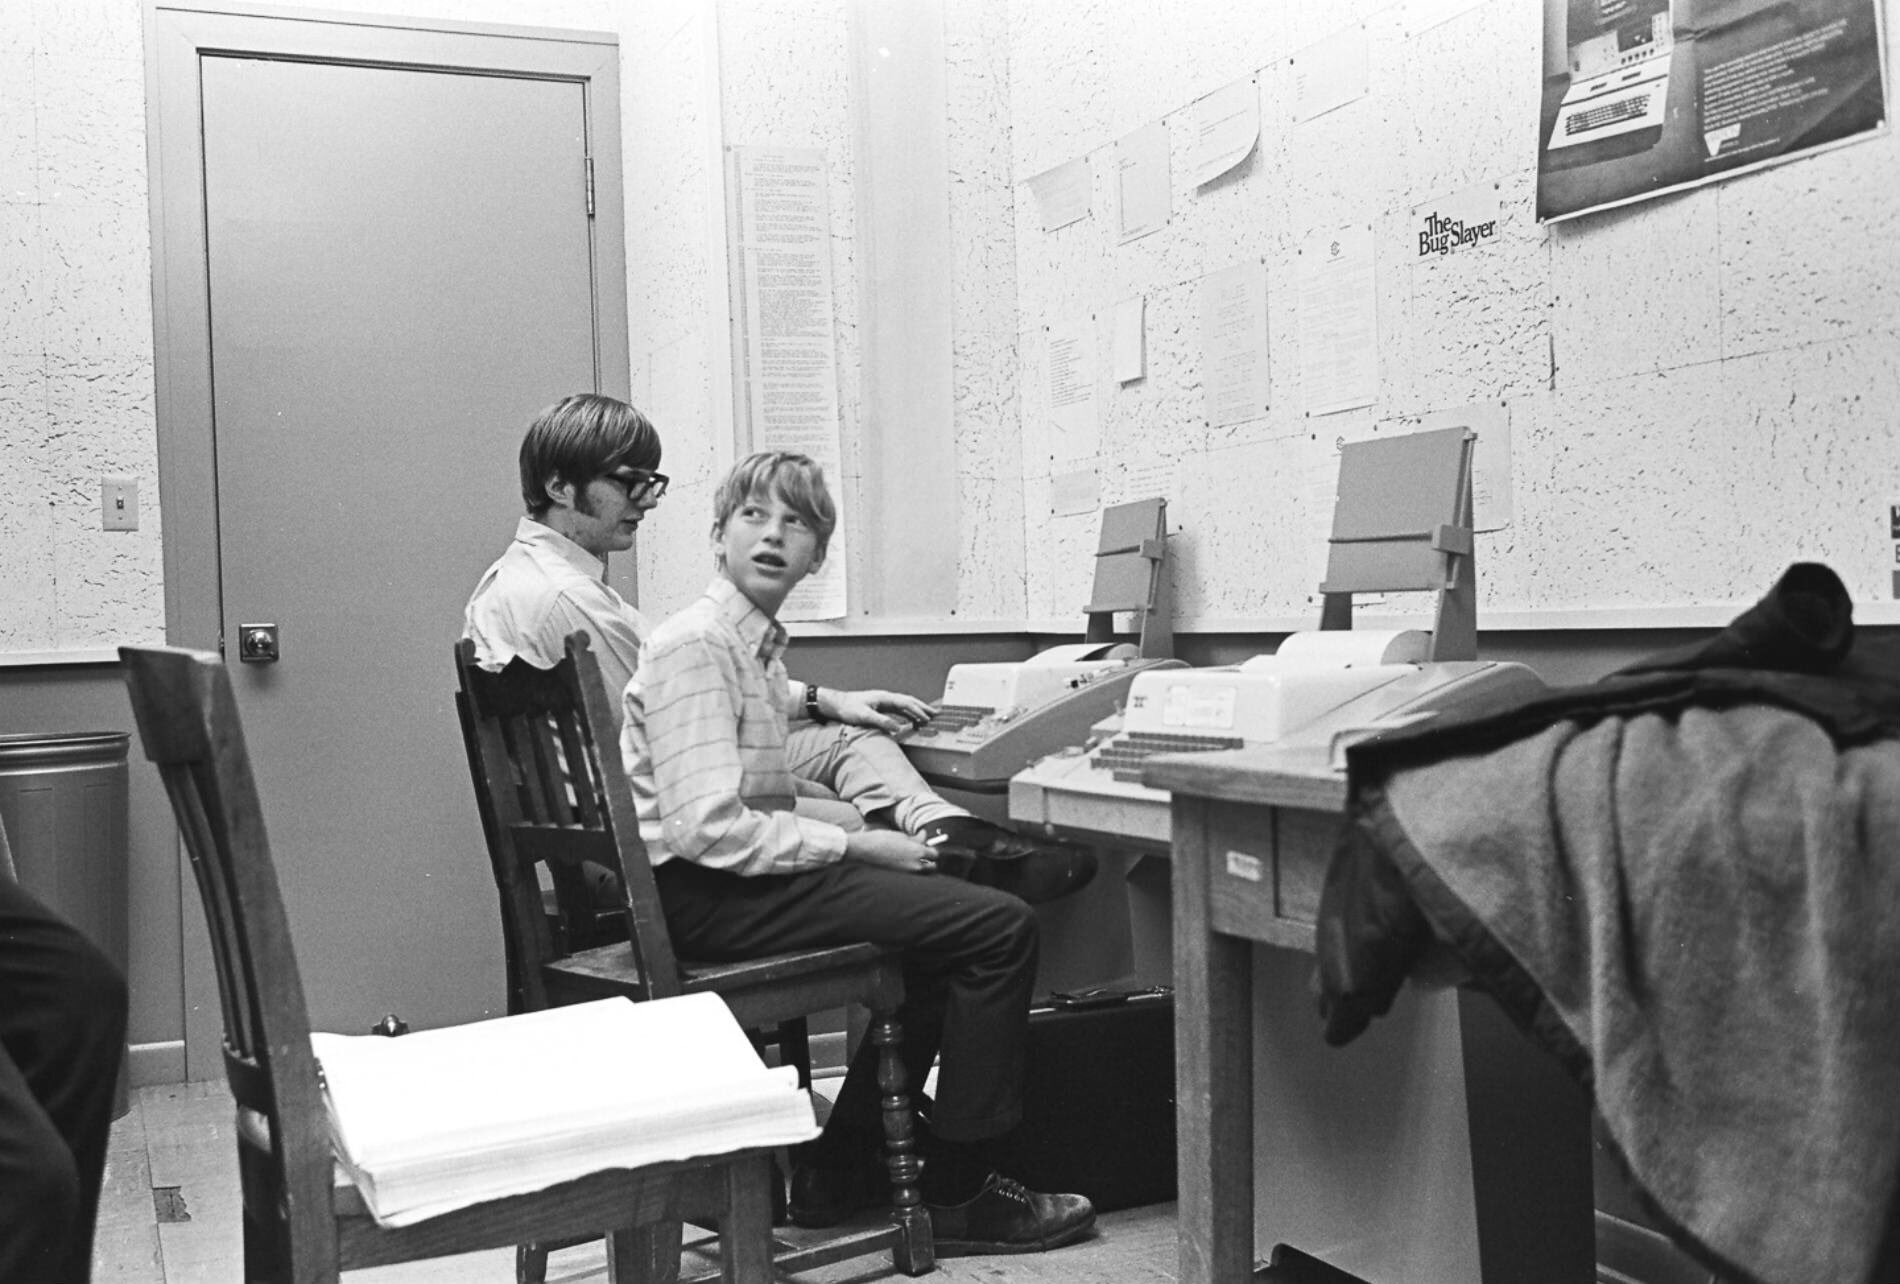 15-year-old Bill Gates and 17-year-old Paul Allen using teletype machines at Lakeside School, 1970 https://t.co/NrqNIjmmt8